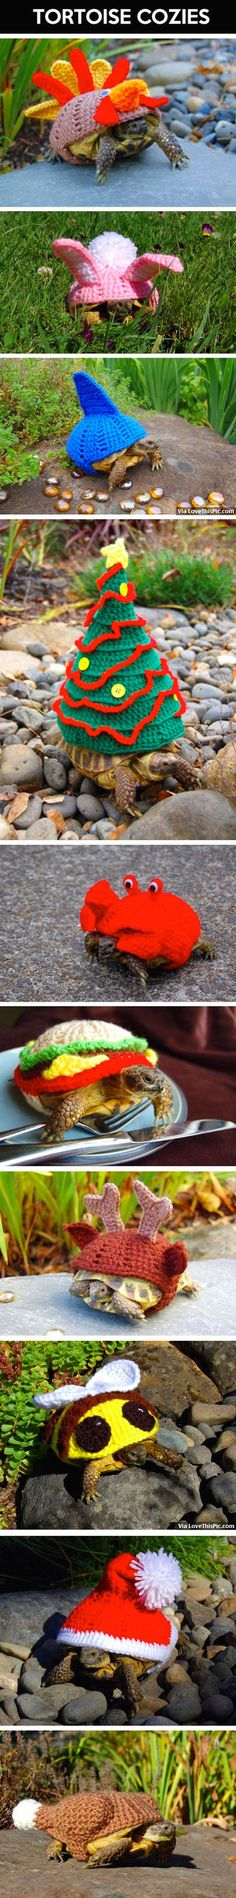 Tortoise Cozies Pictures, Photos, and Images for Facebook, Tumblr, Pinterest, and Twitter